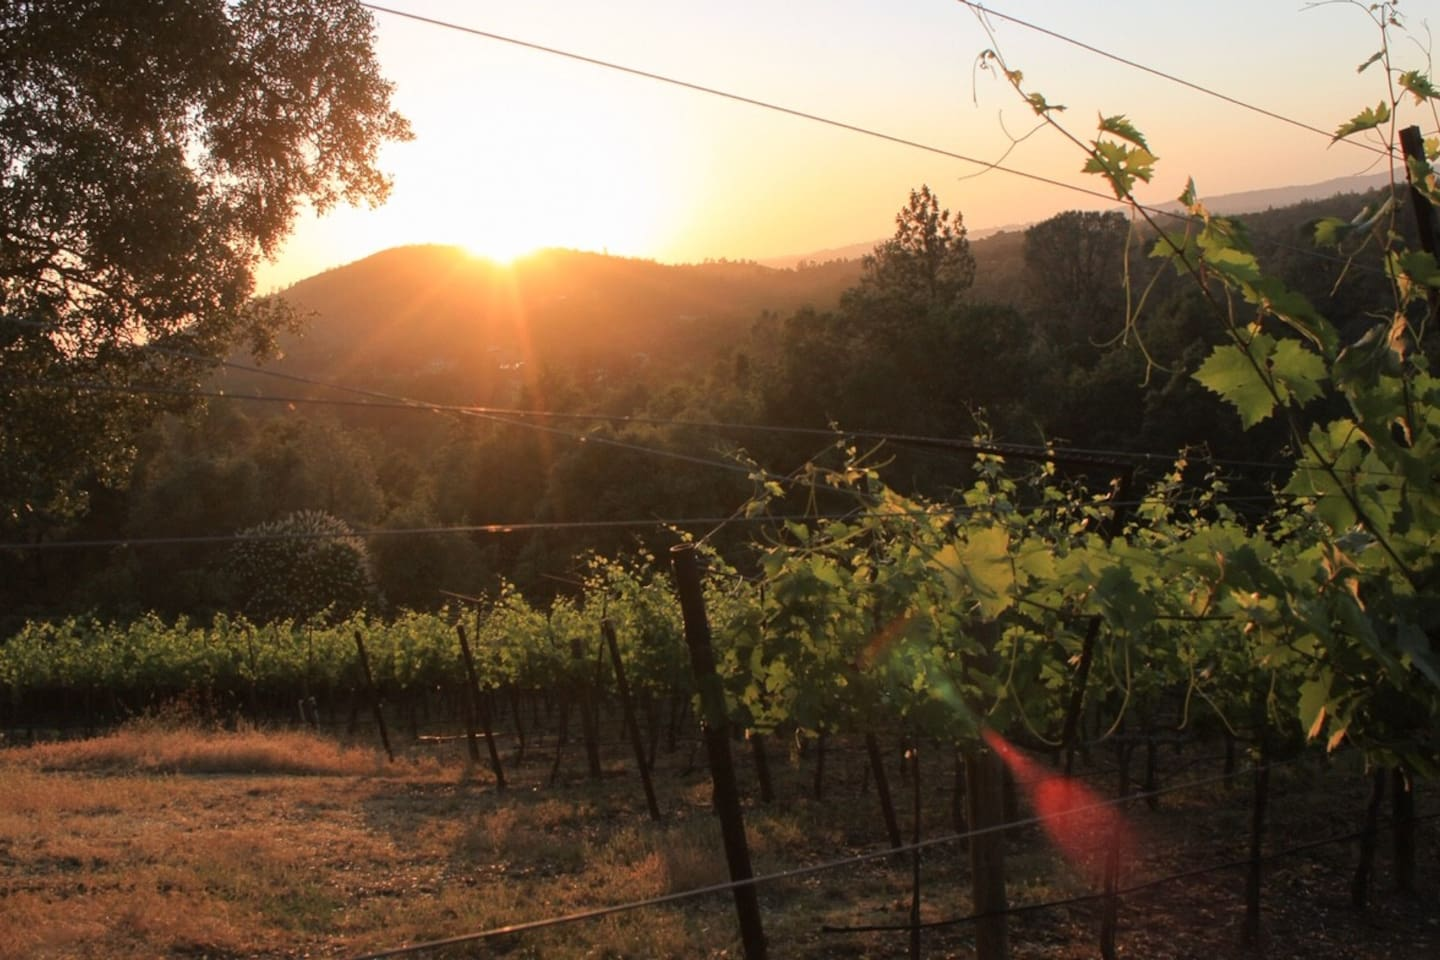 Summer views from the vineyard.